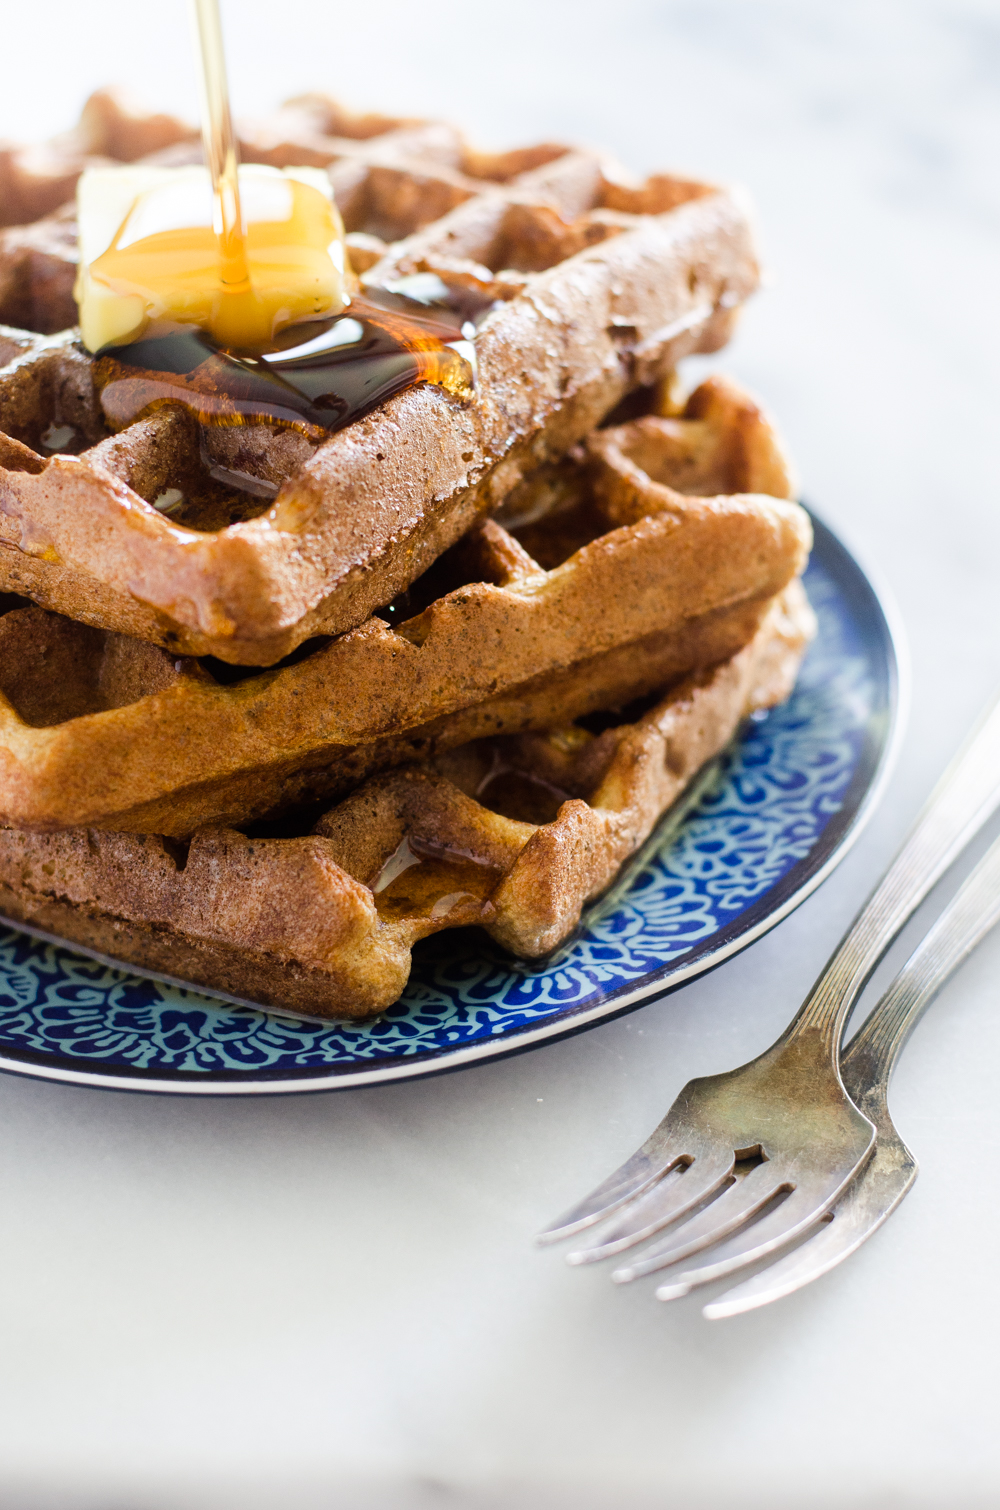 Gluten Free and Grain Free Waffles - these waffles are not only gluten and grain free, they also contain ZERO flour. No almond flour, no chickpea flour, no arrowroot...just a weird ingredient that acts like flour! Click to learn more...